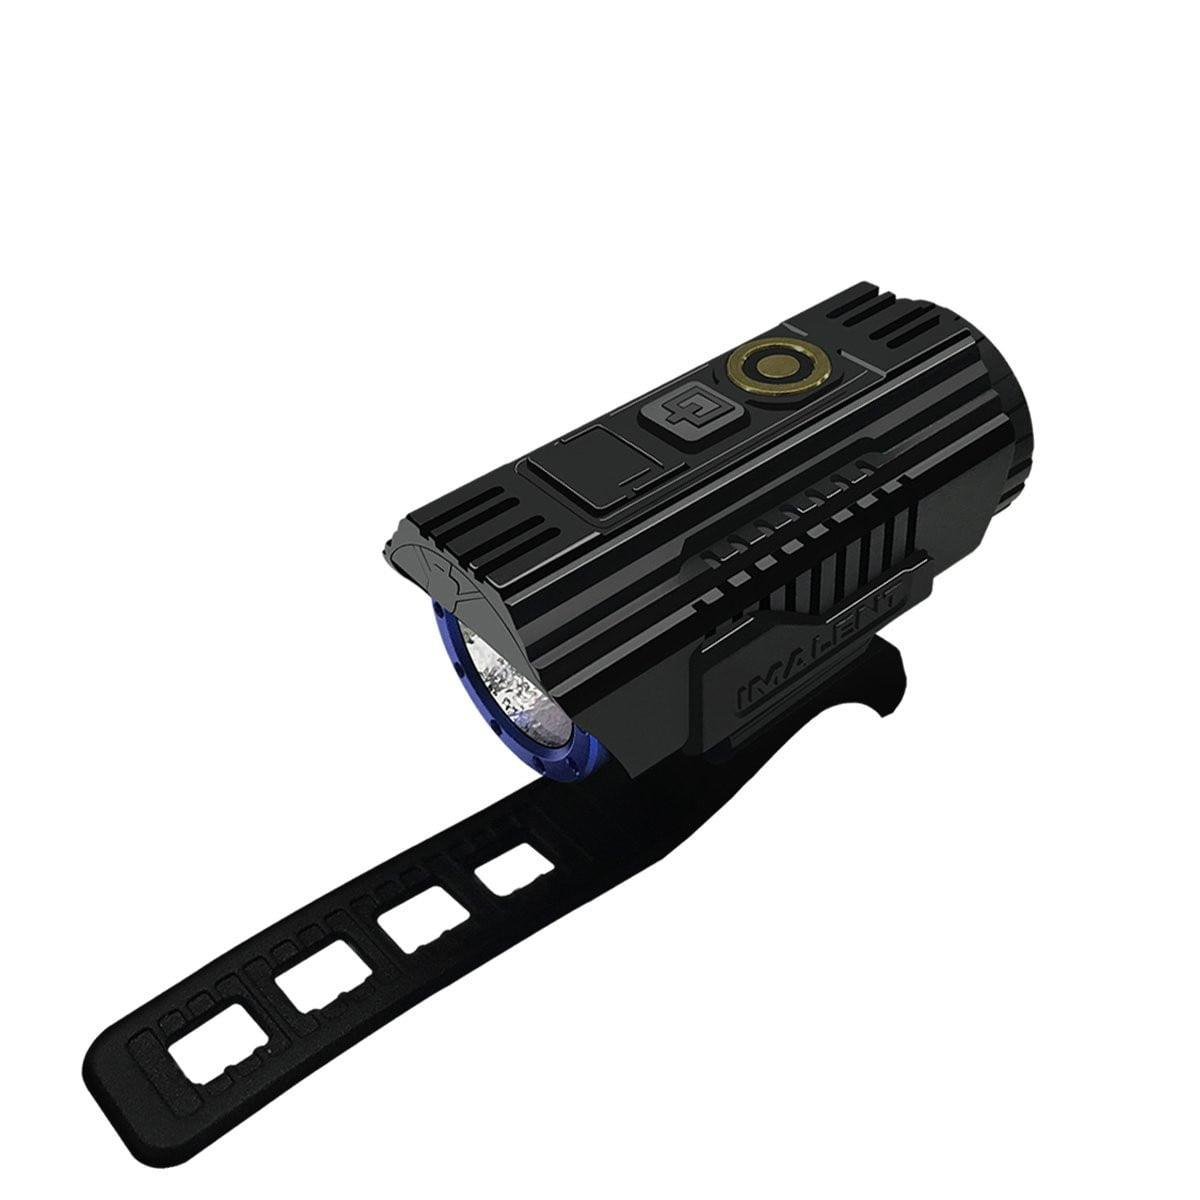 BG10 Bike Light